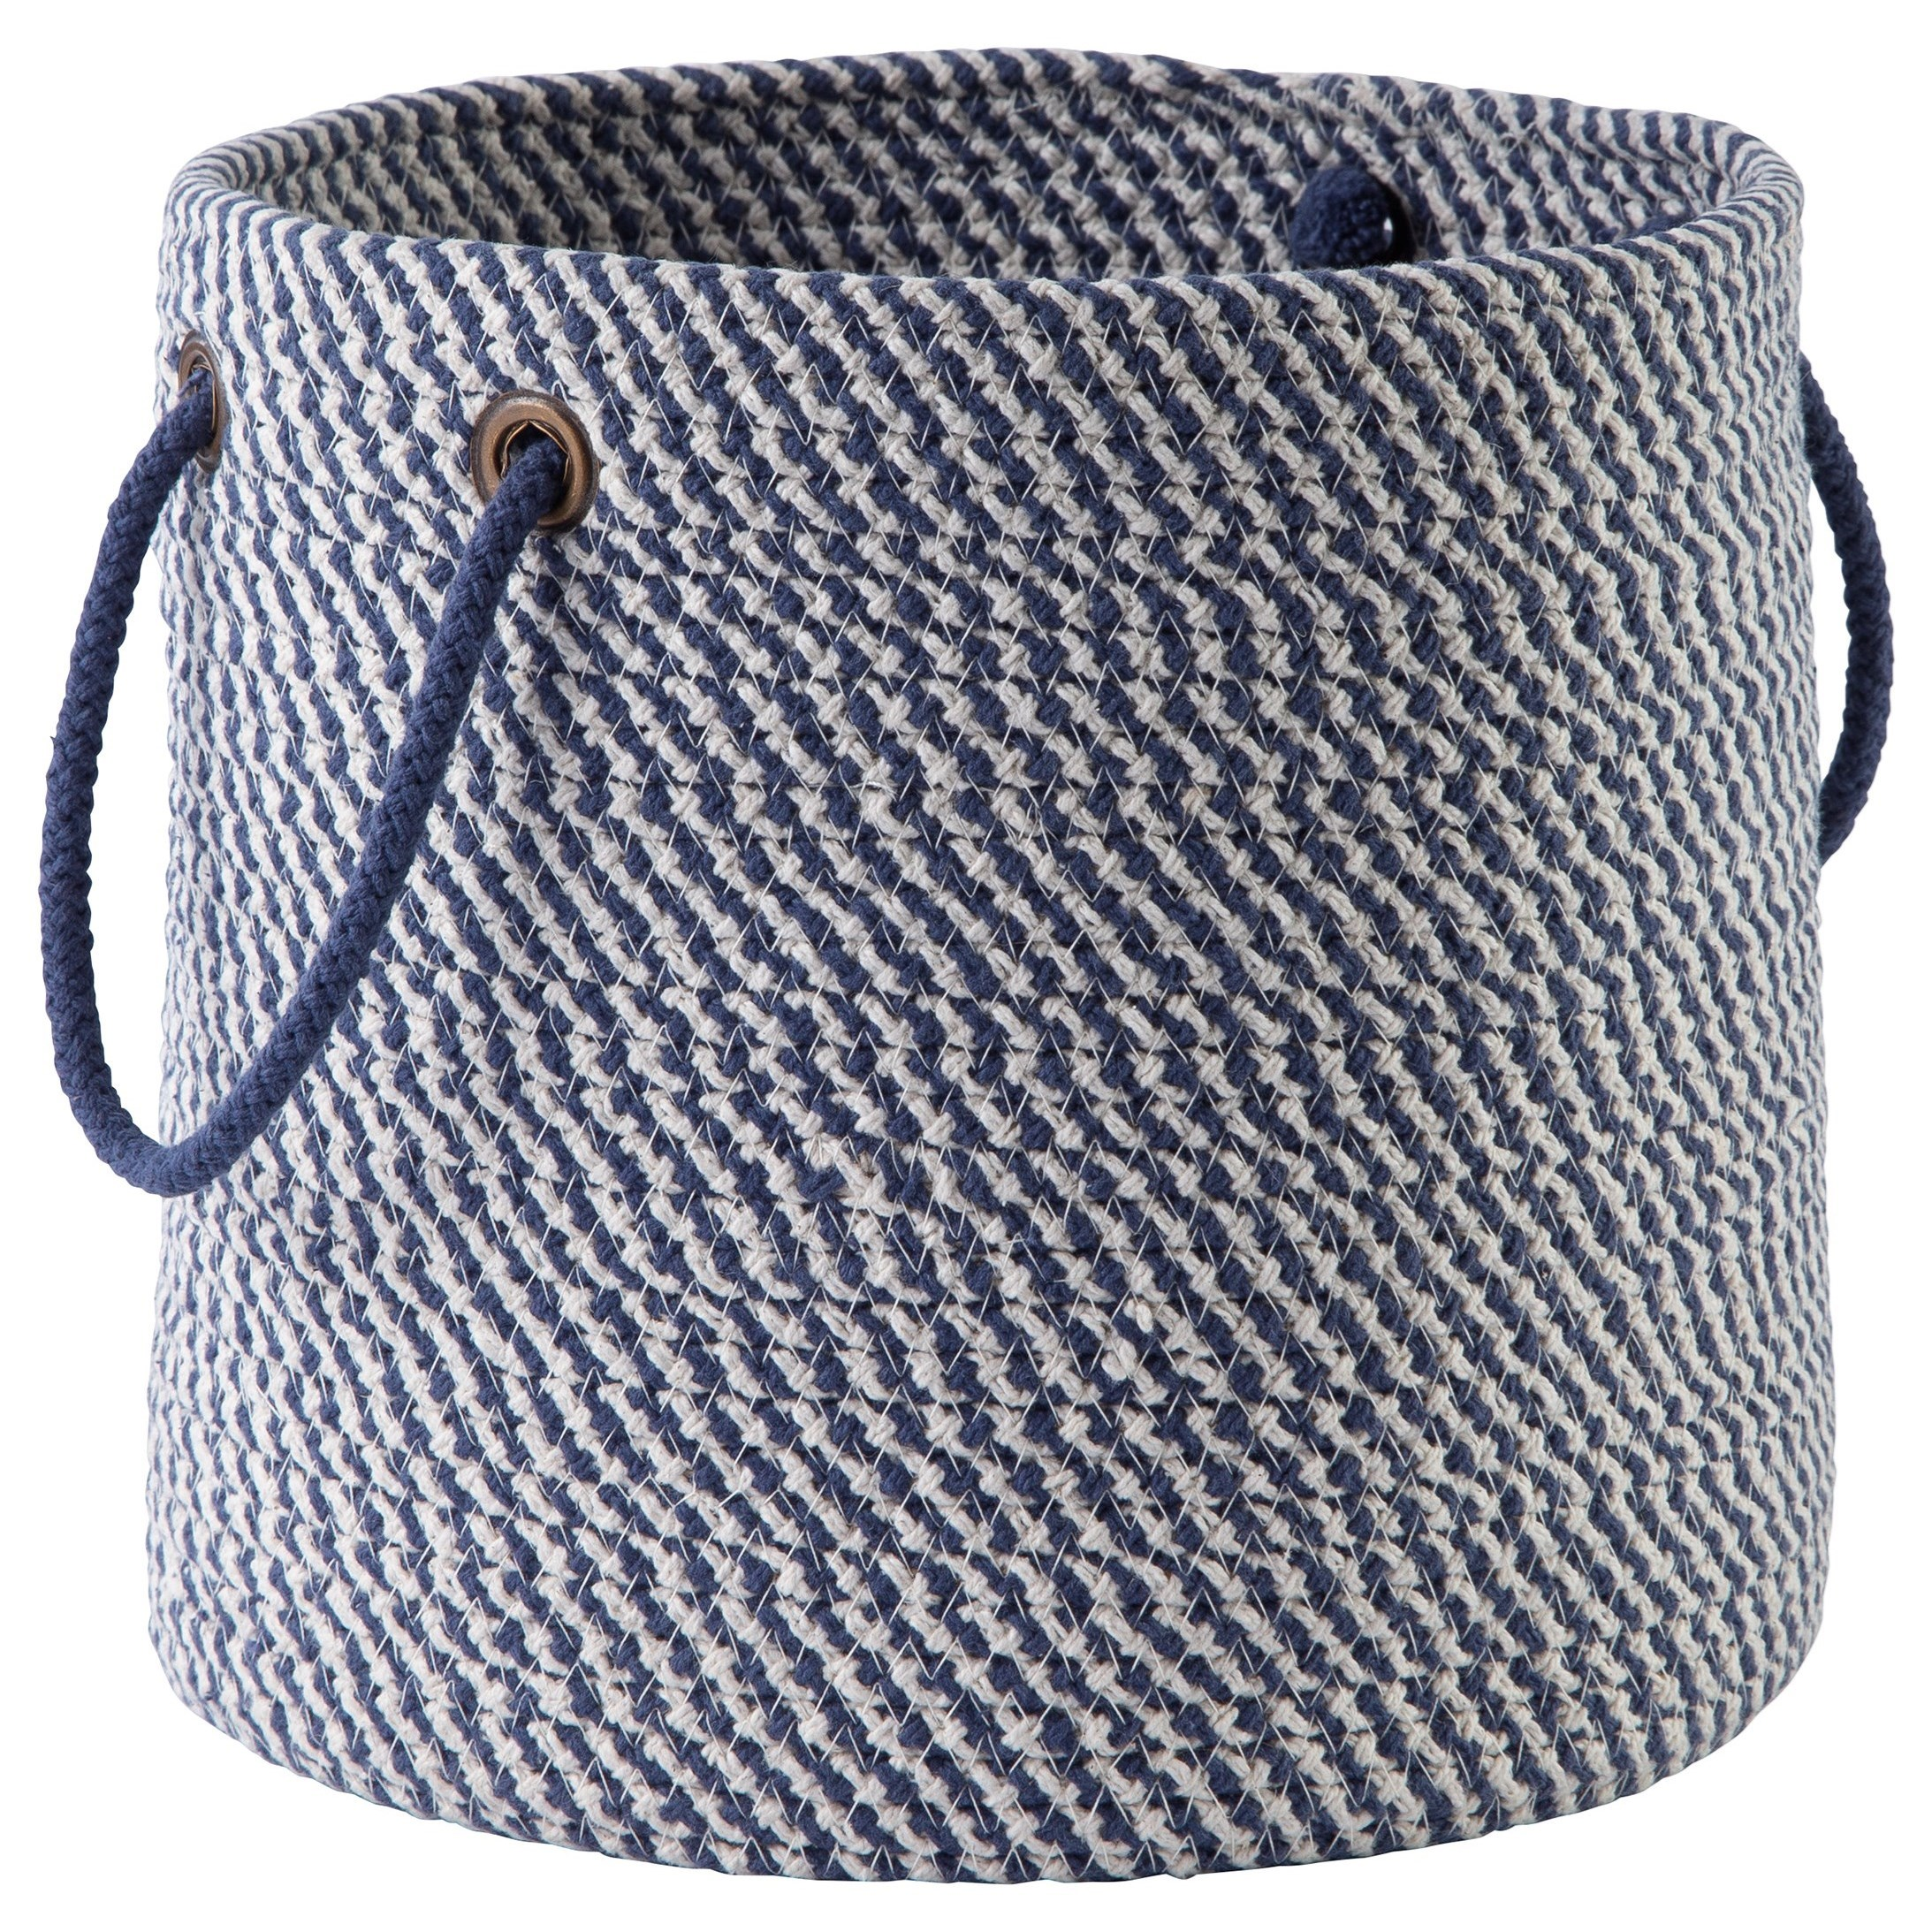 Accents Eider Navy Basket by Signature Design by Ashley at Dream Home Interiors